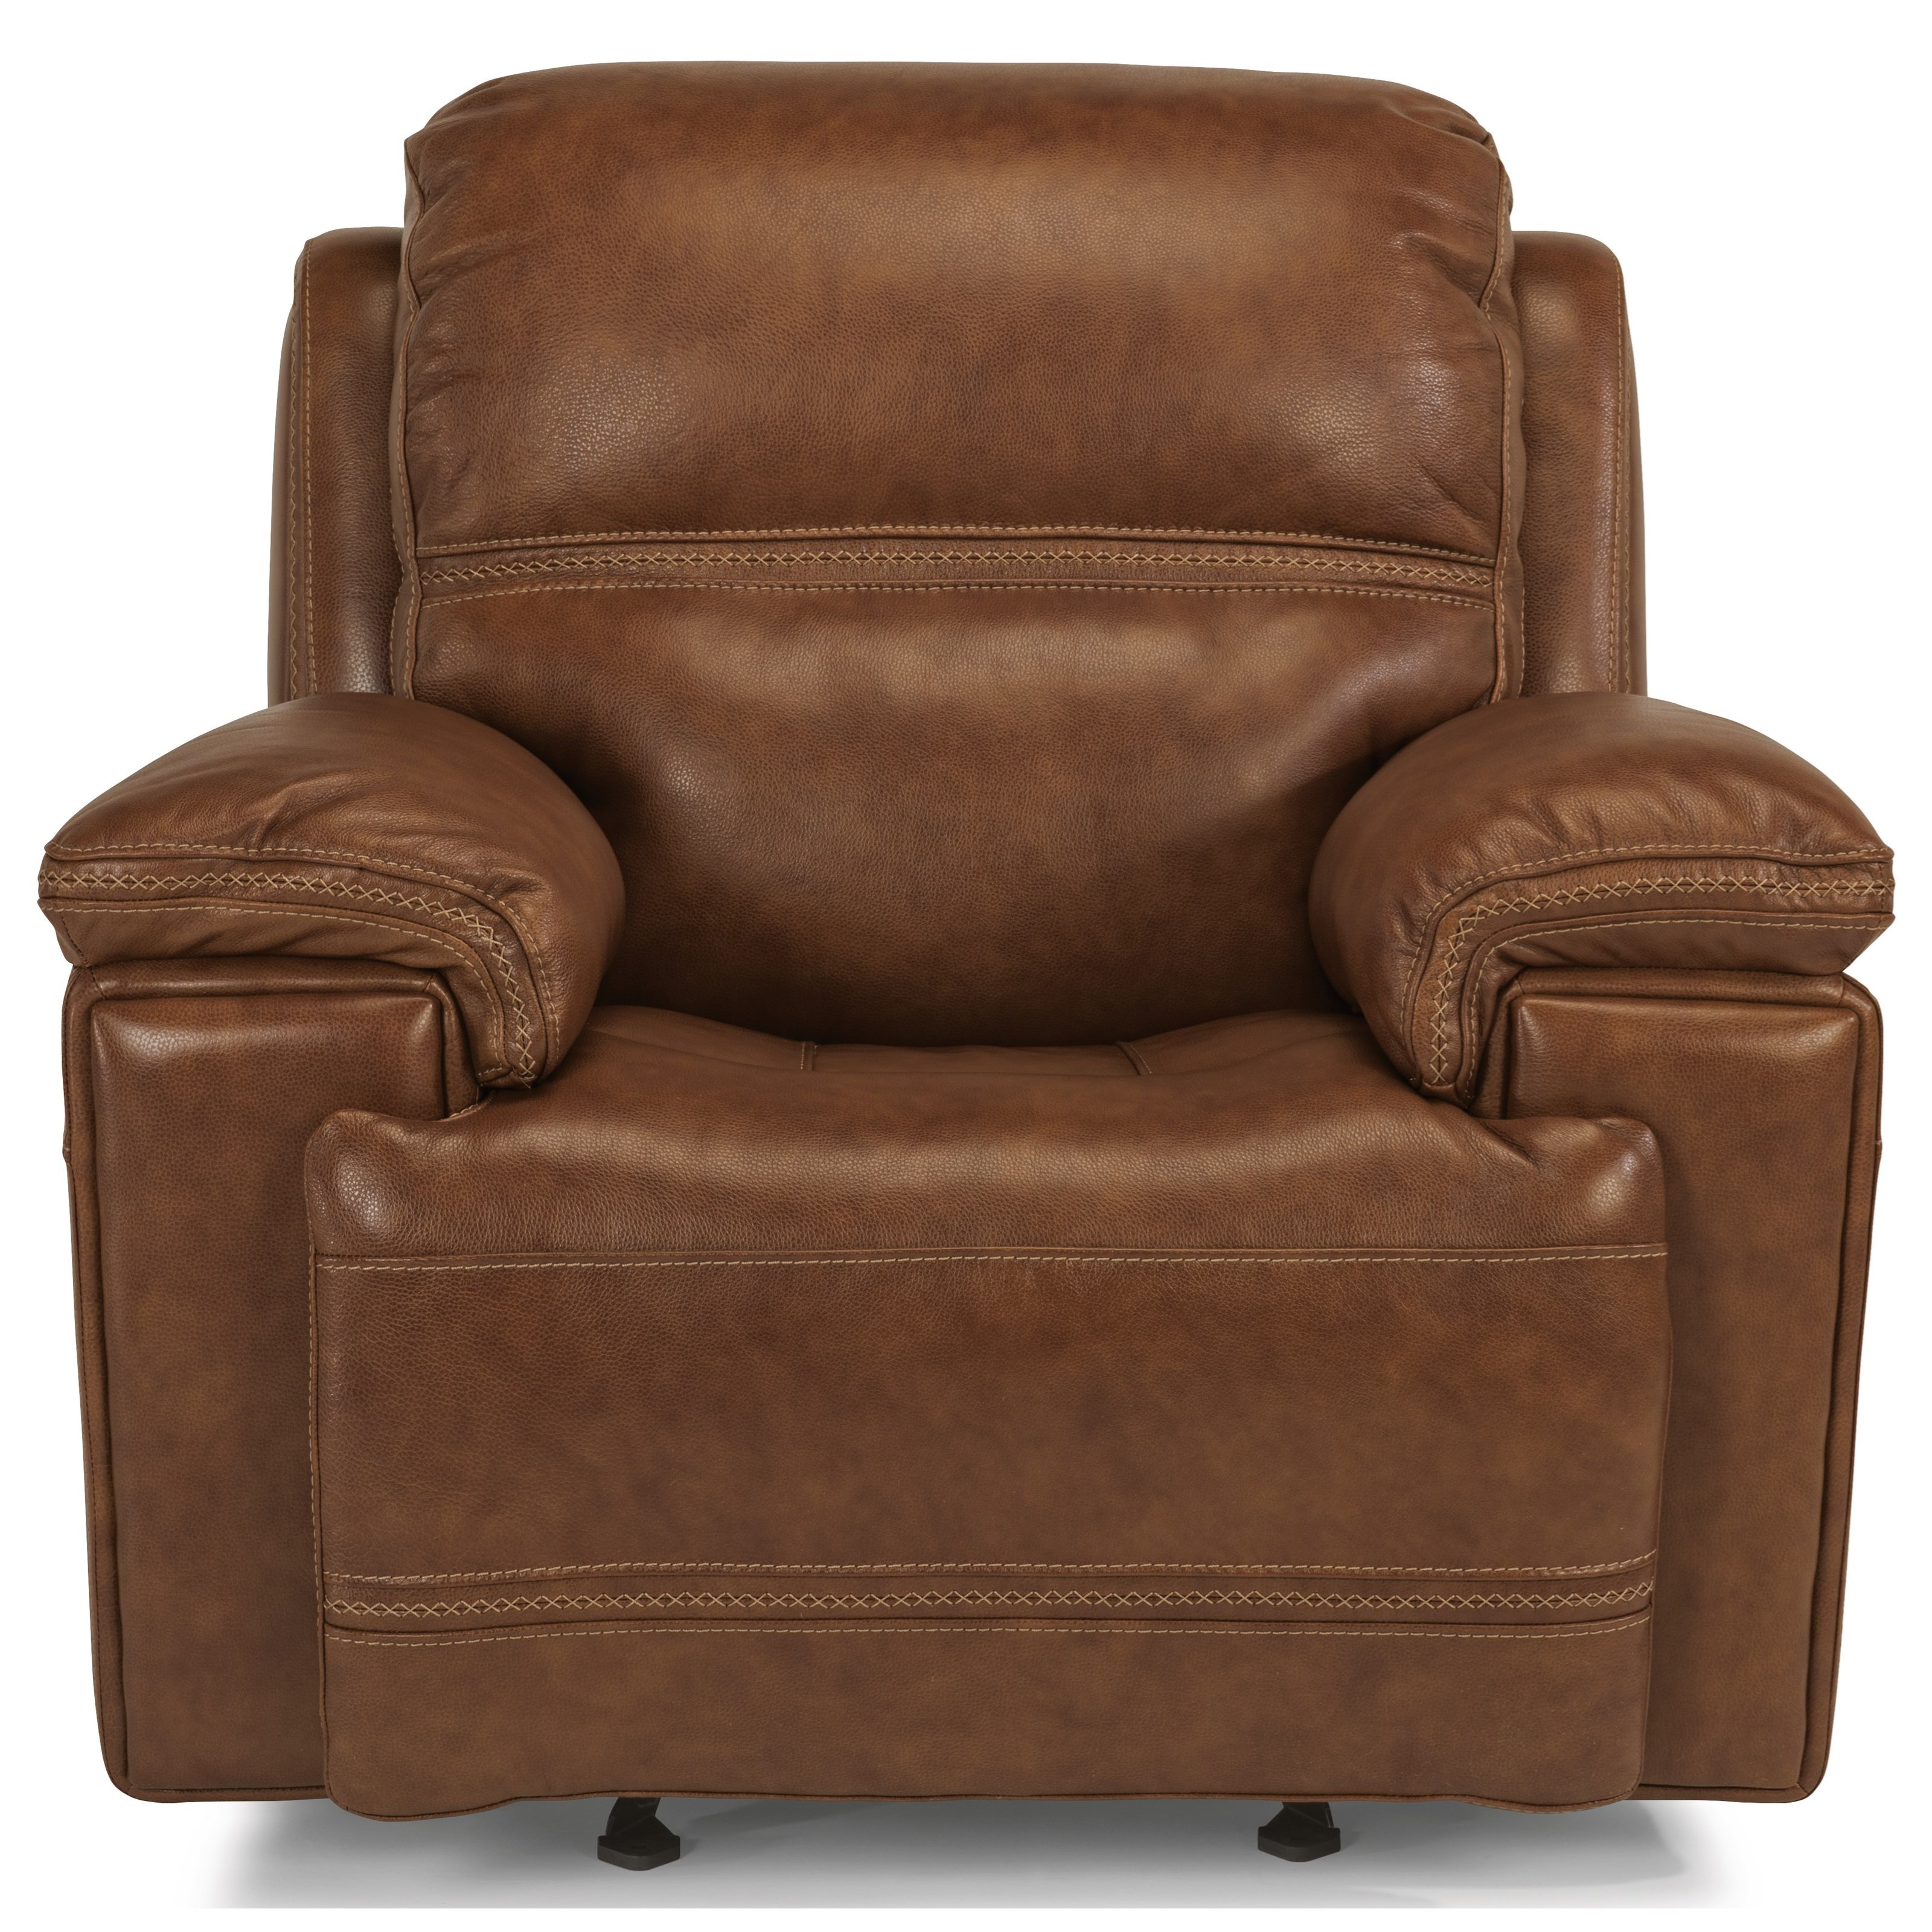 Pwr Leather Recliner w/ Pwr Headrest